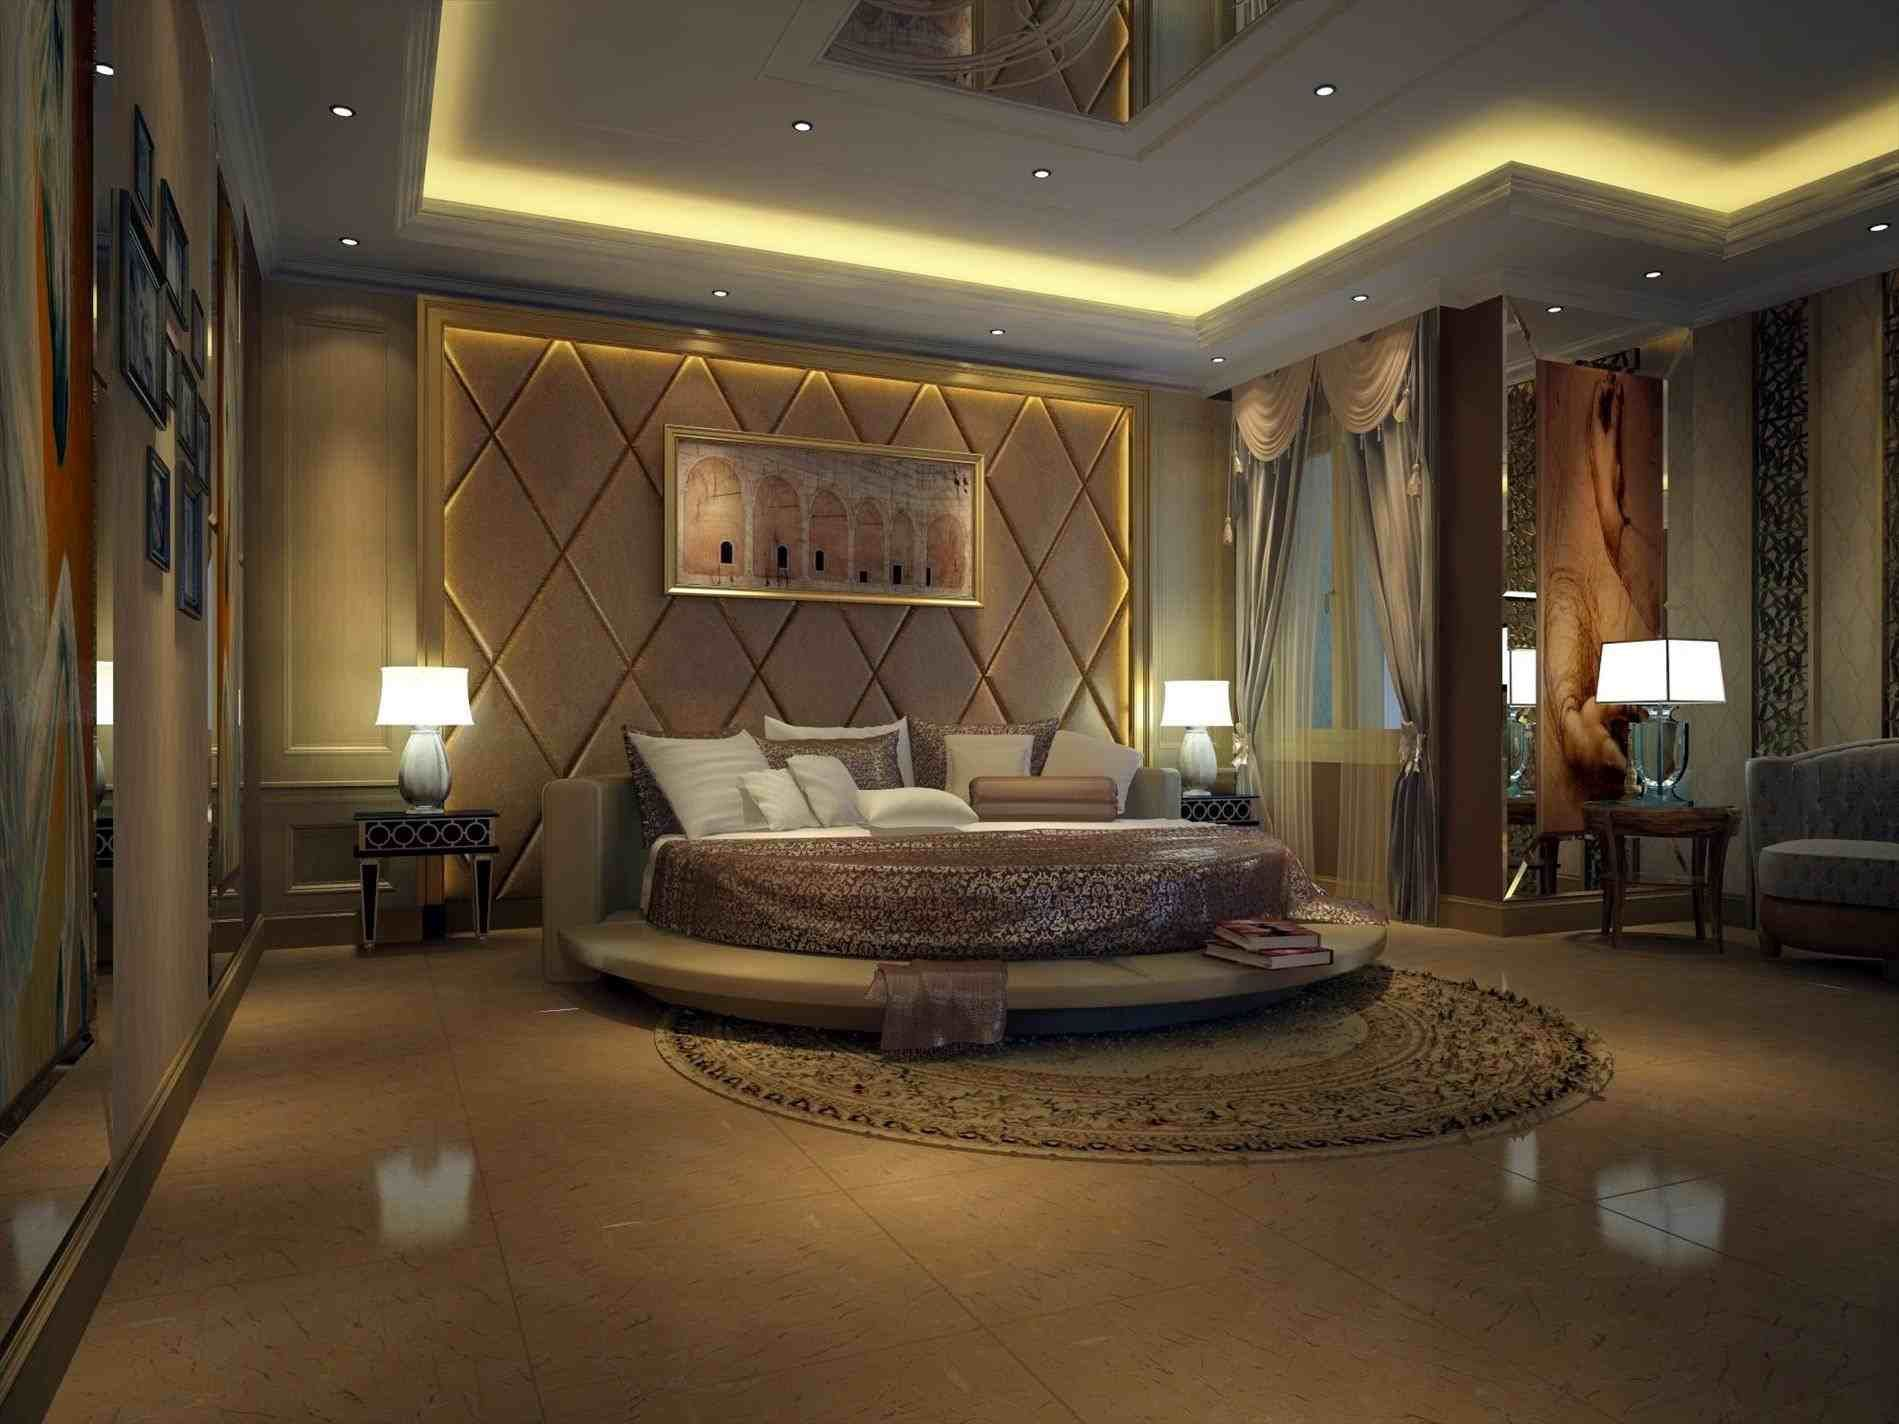 romantic bedroom colors for master bedrooms bed room 25 top view post house interior design romantic bedroom visit homelivings decor ideas master bedrooms pinterest